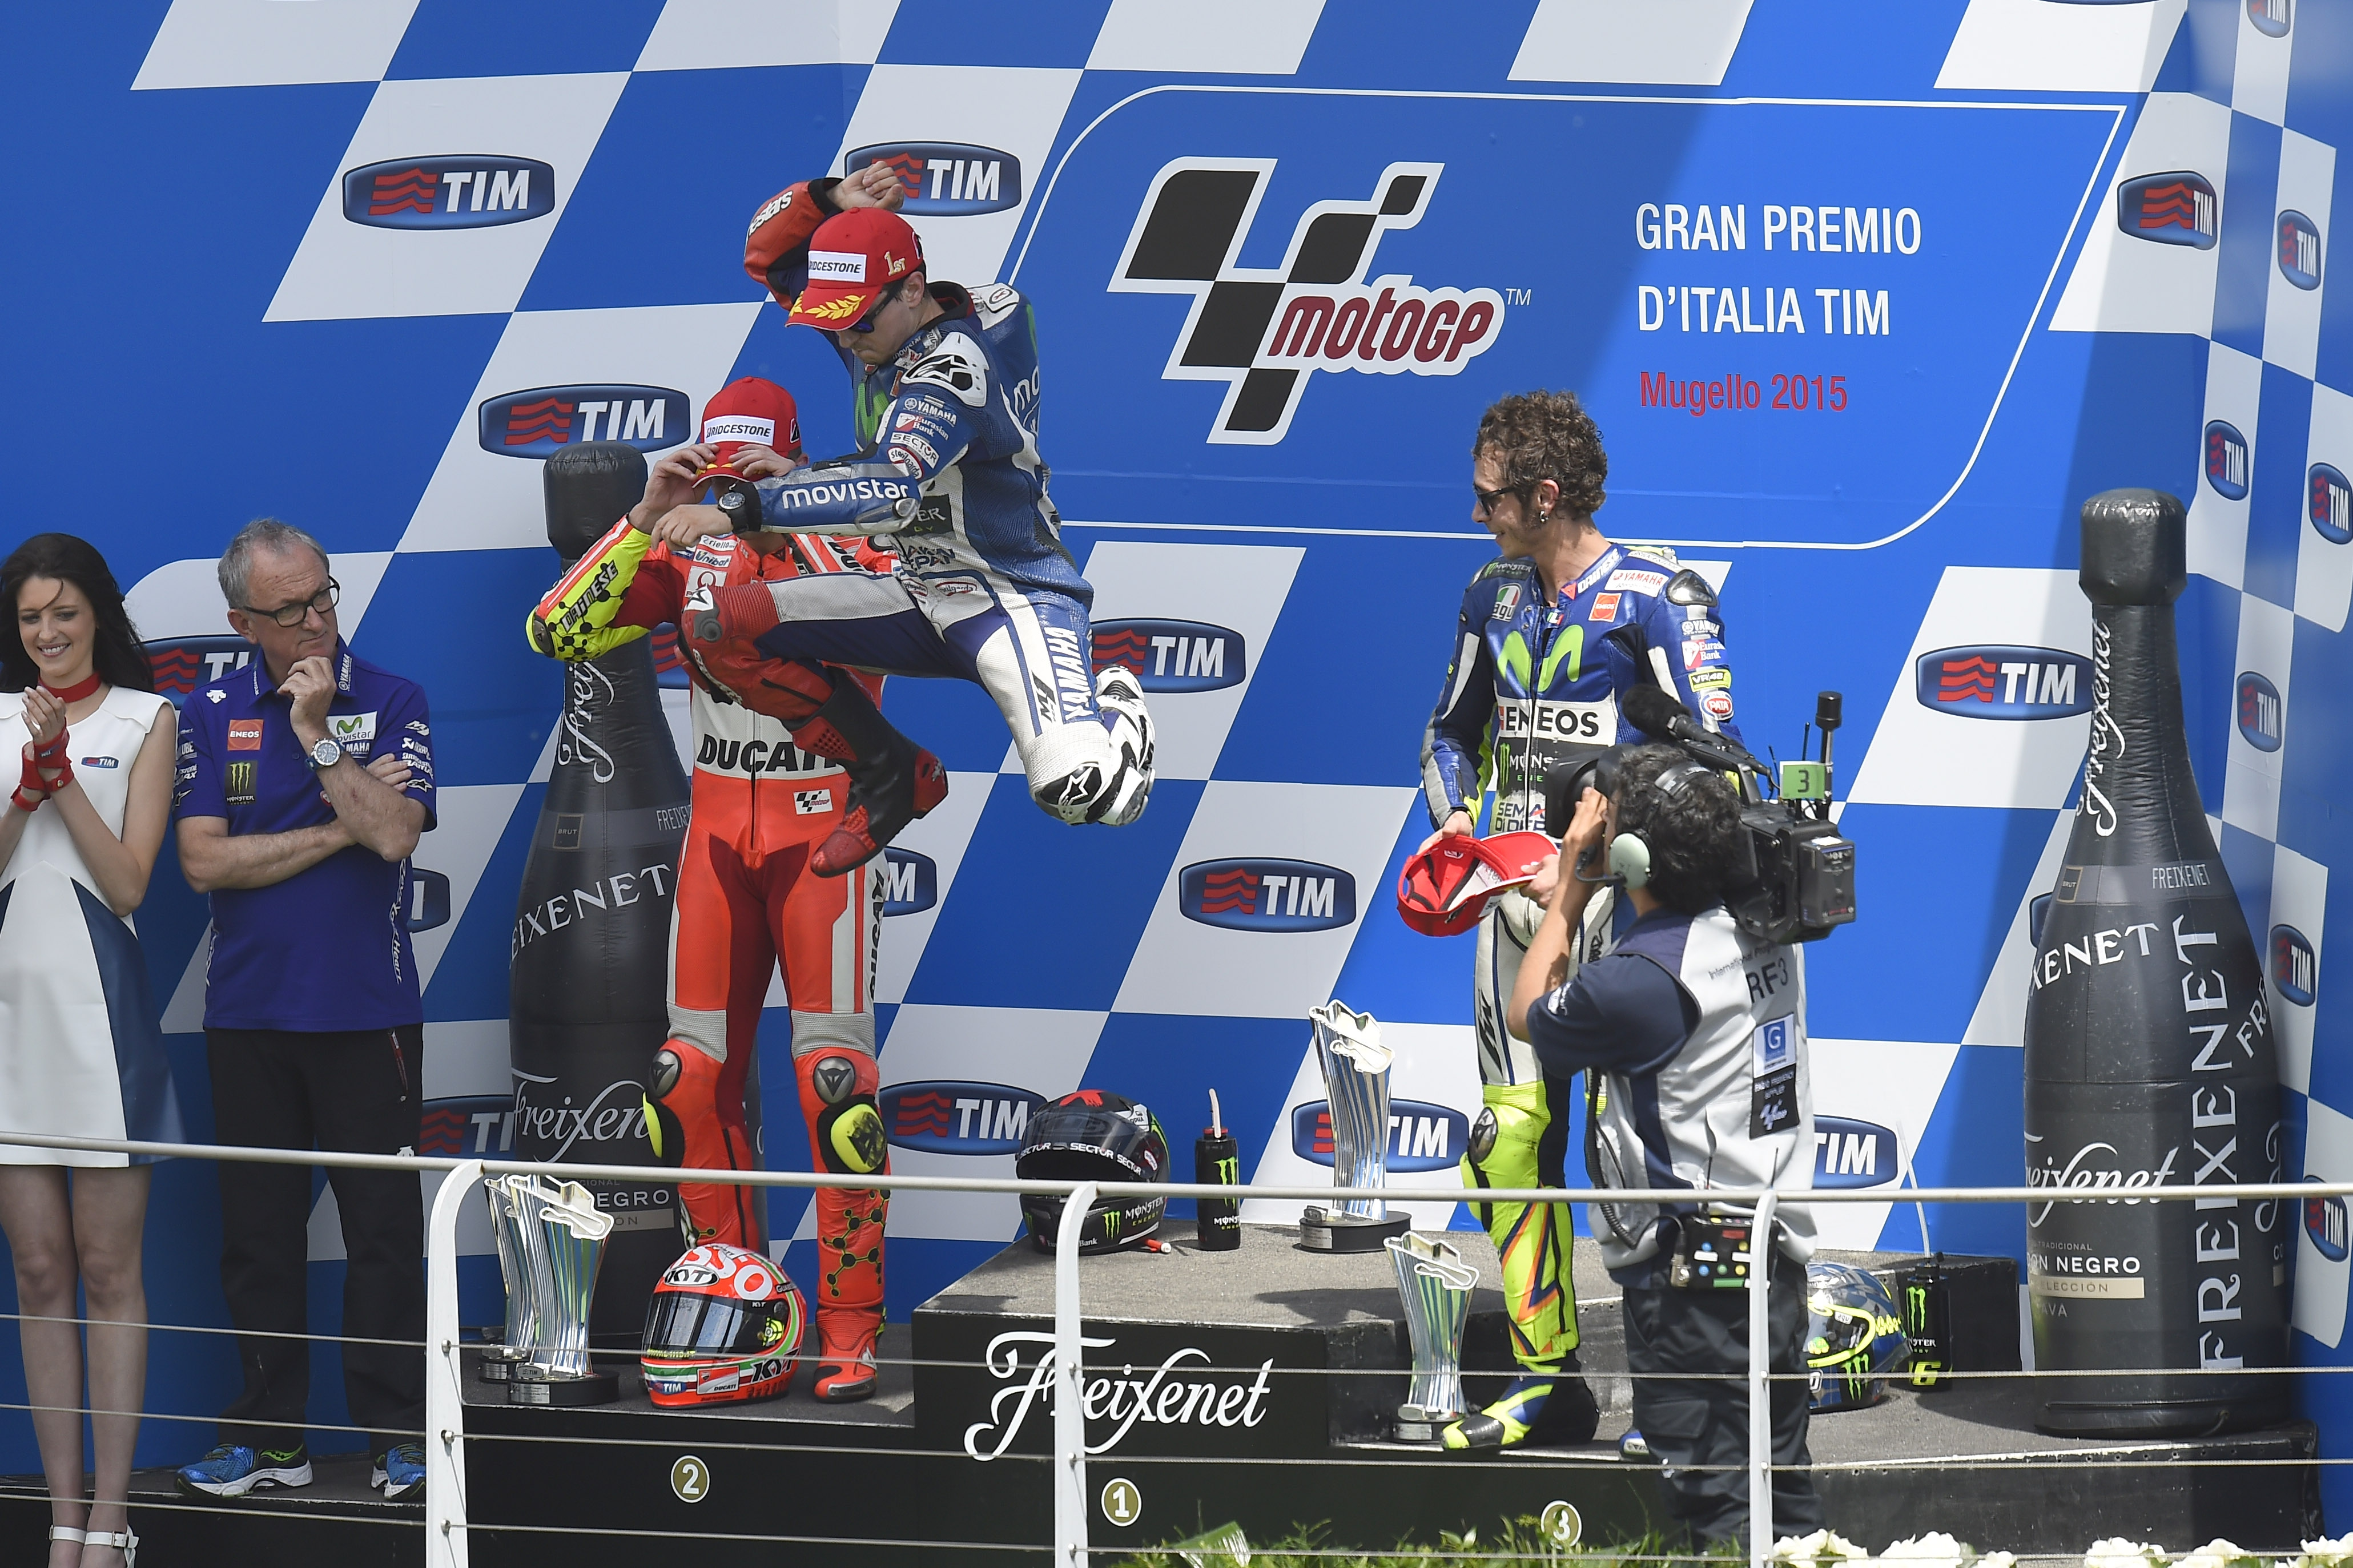 MotoGP 2015: championship standings after Mugello